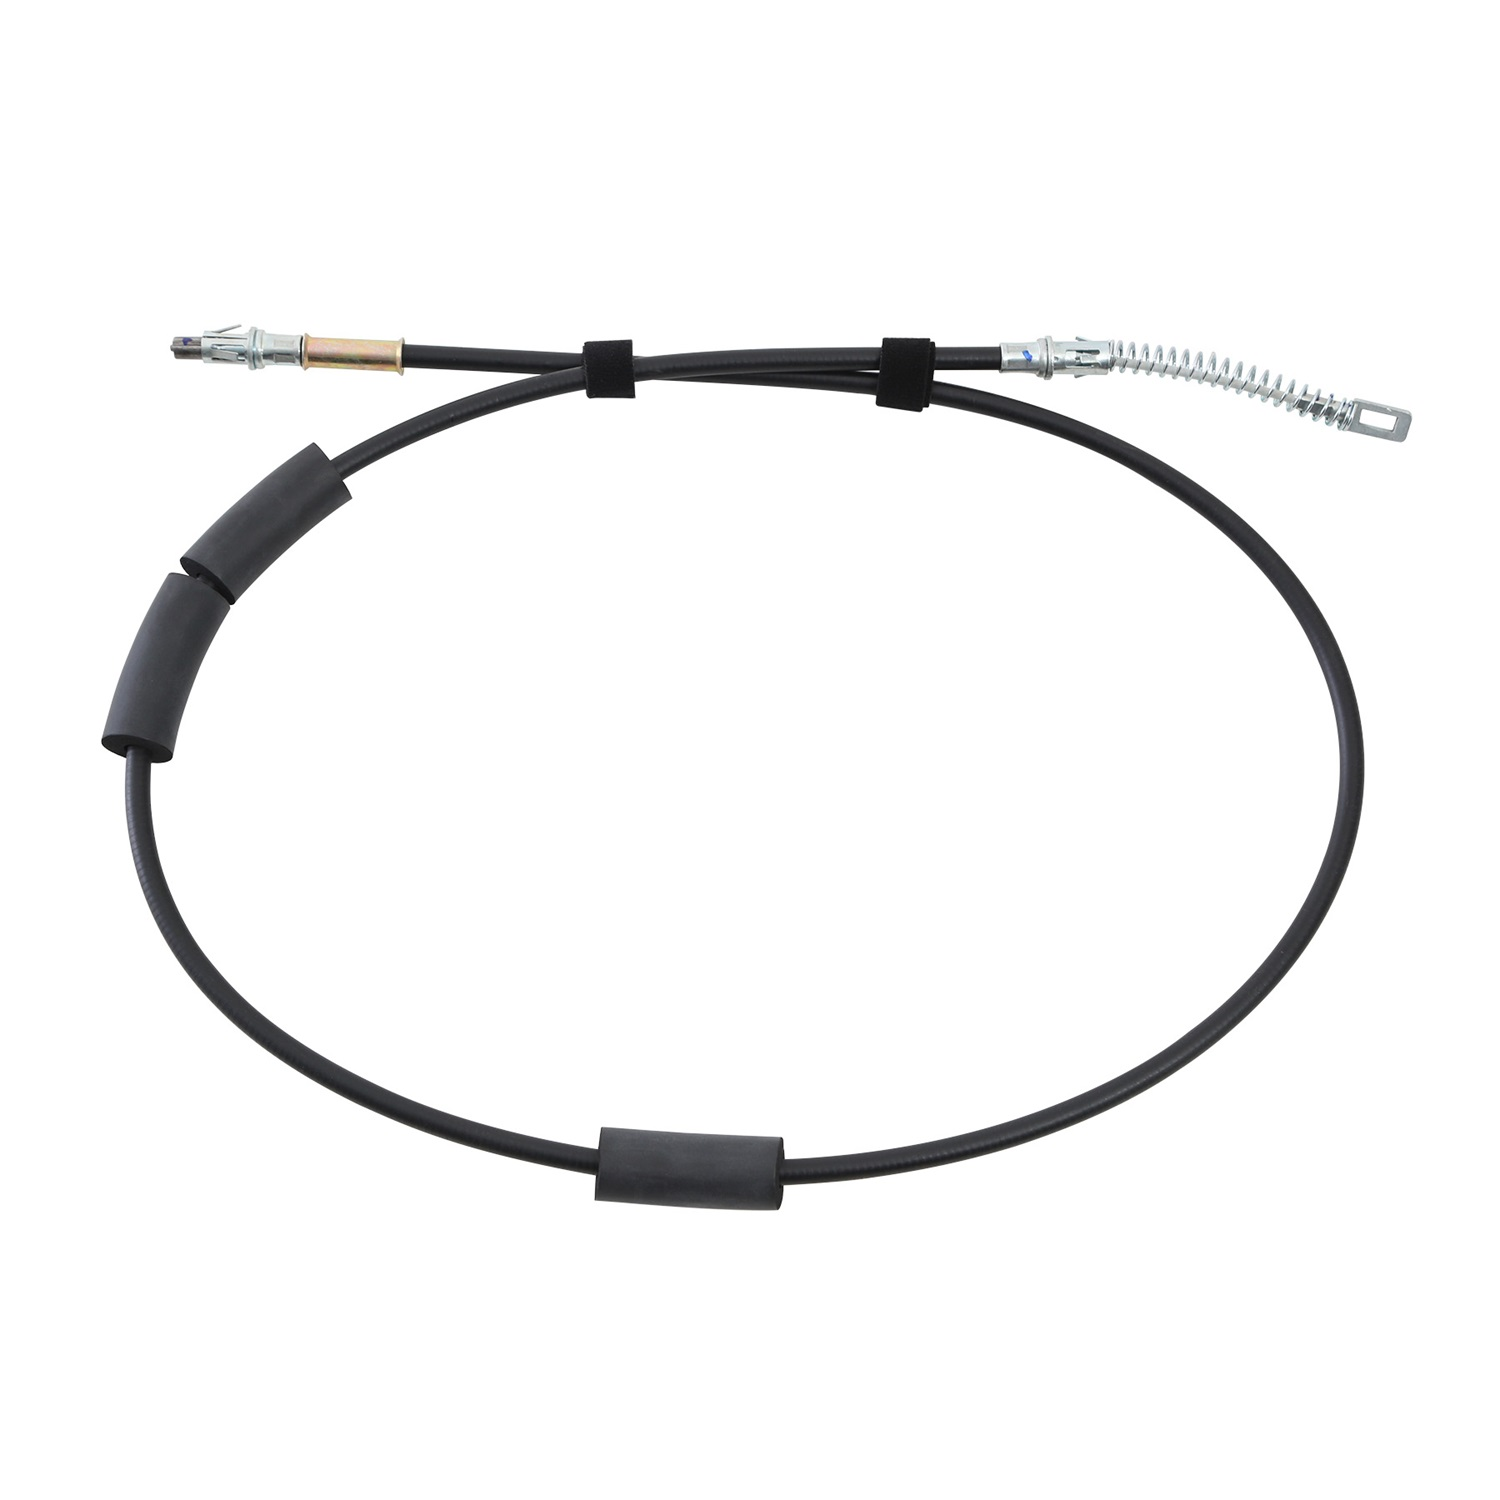 G2 Axle and Gear Parking Brake Cable